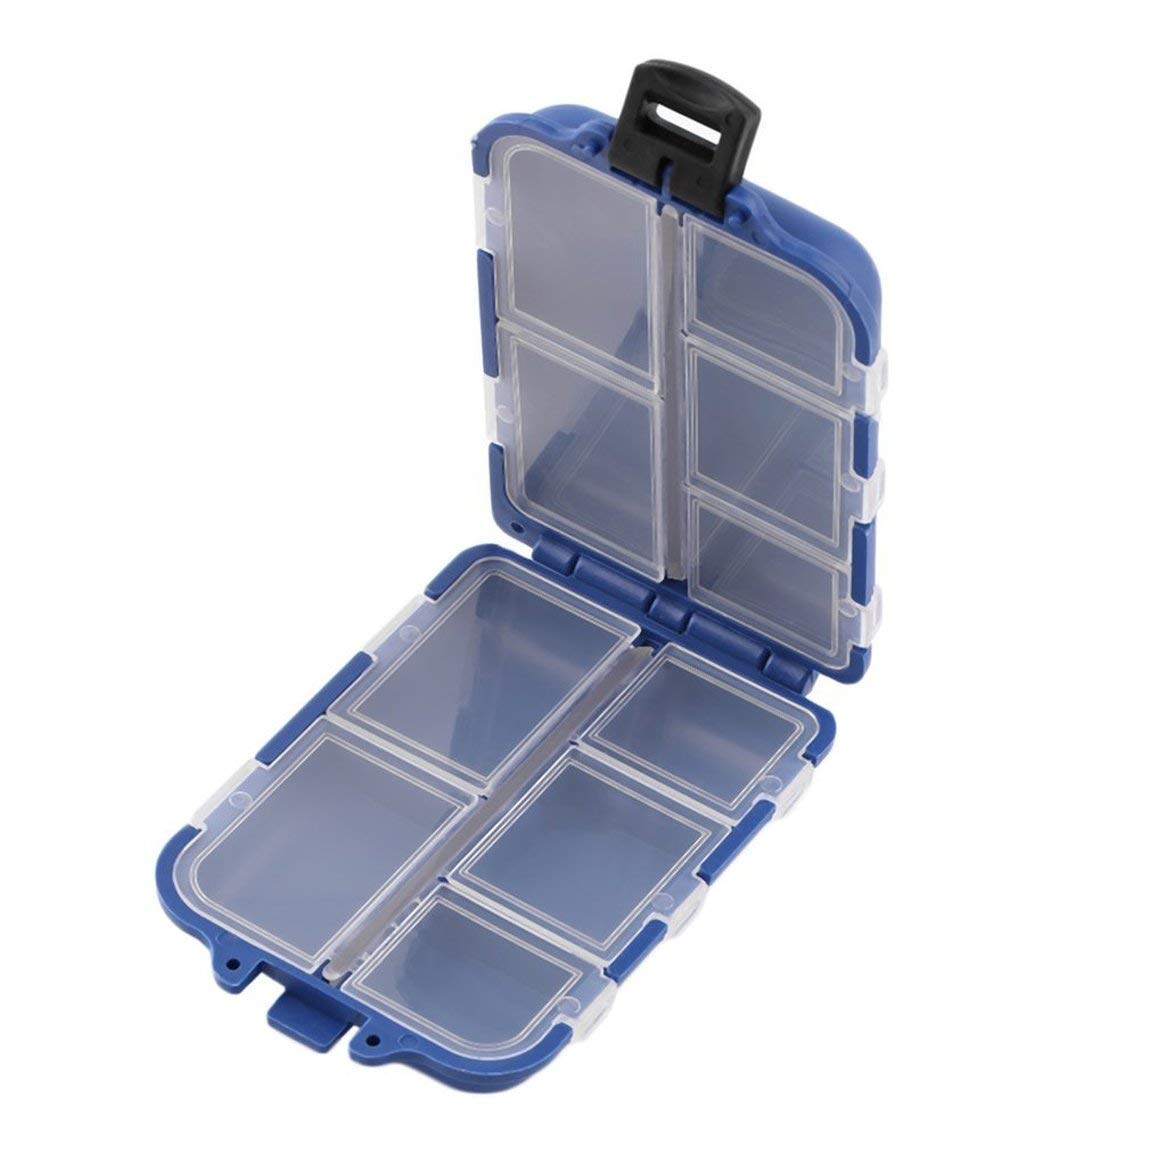 10 Compartments Storage Case Box Fly Fishing Lure Spoon Hook Bait Tackle Box Case Fishing Accessories SeniorMar